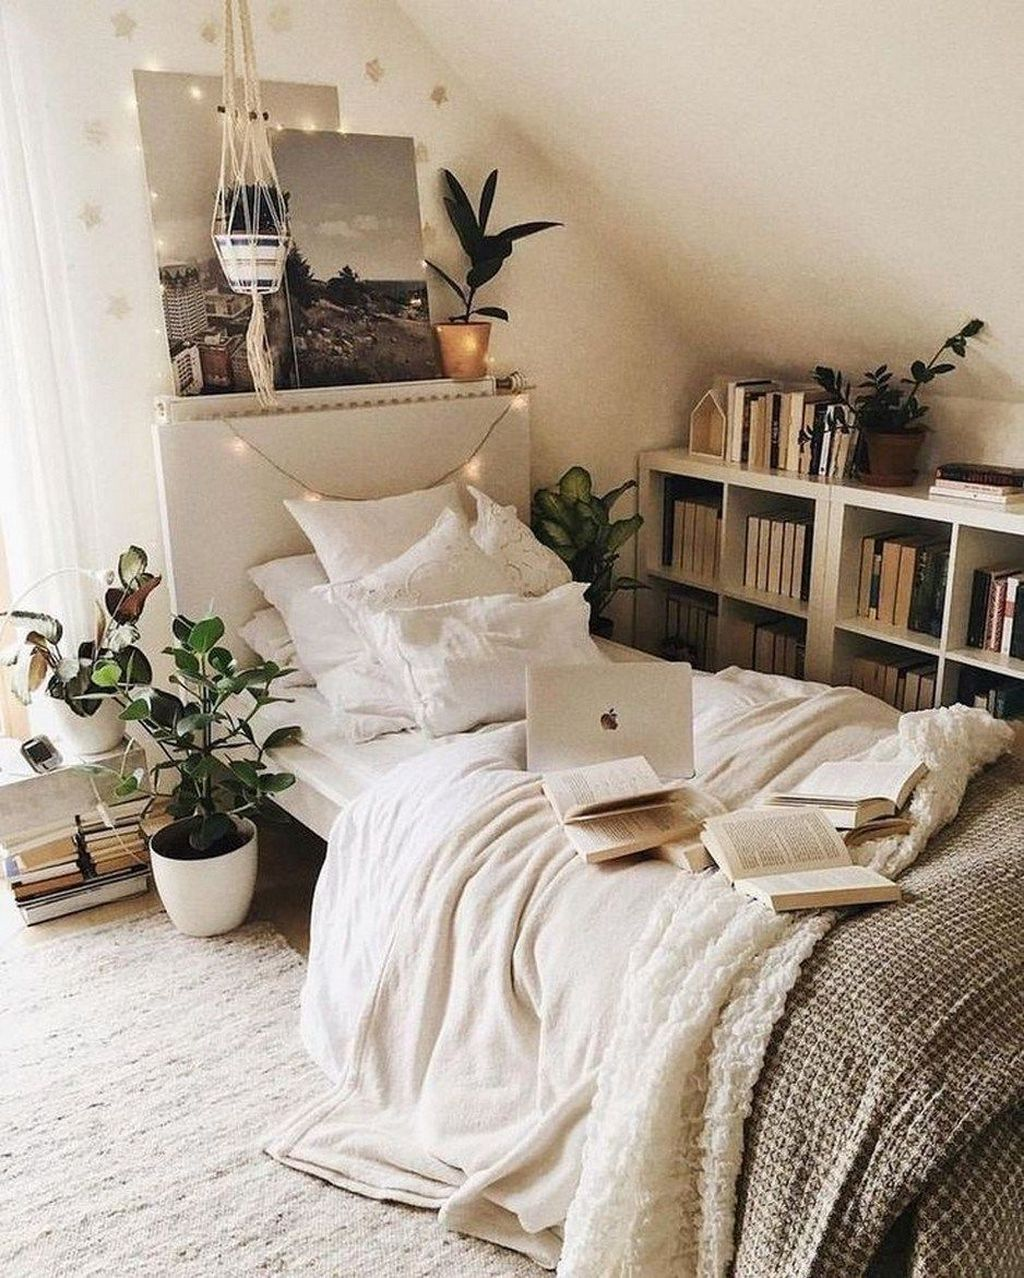 30 Minimalist Bedroom Decoration Ideas That Looks More Cool Cozy Small Bedrooms Small Bedroom Decor Small Room Bedroom